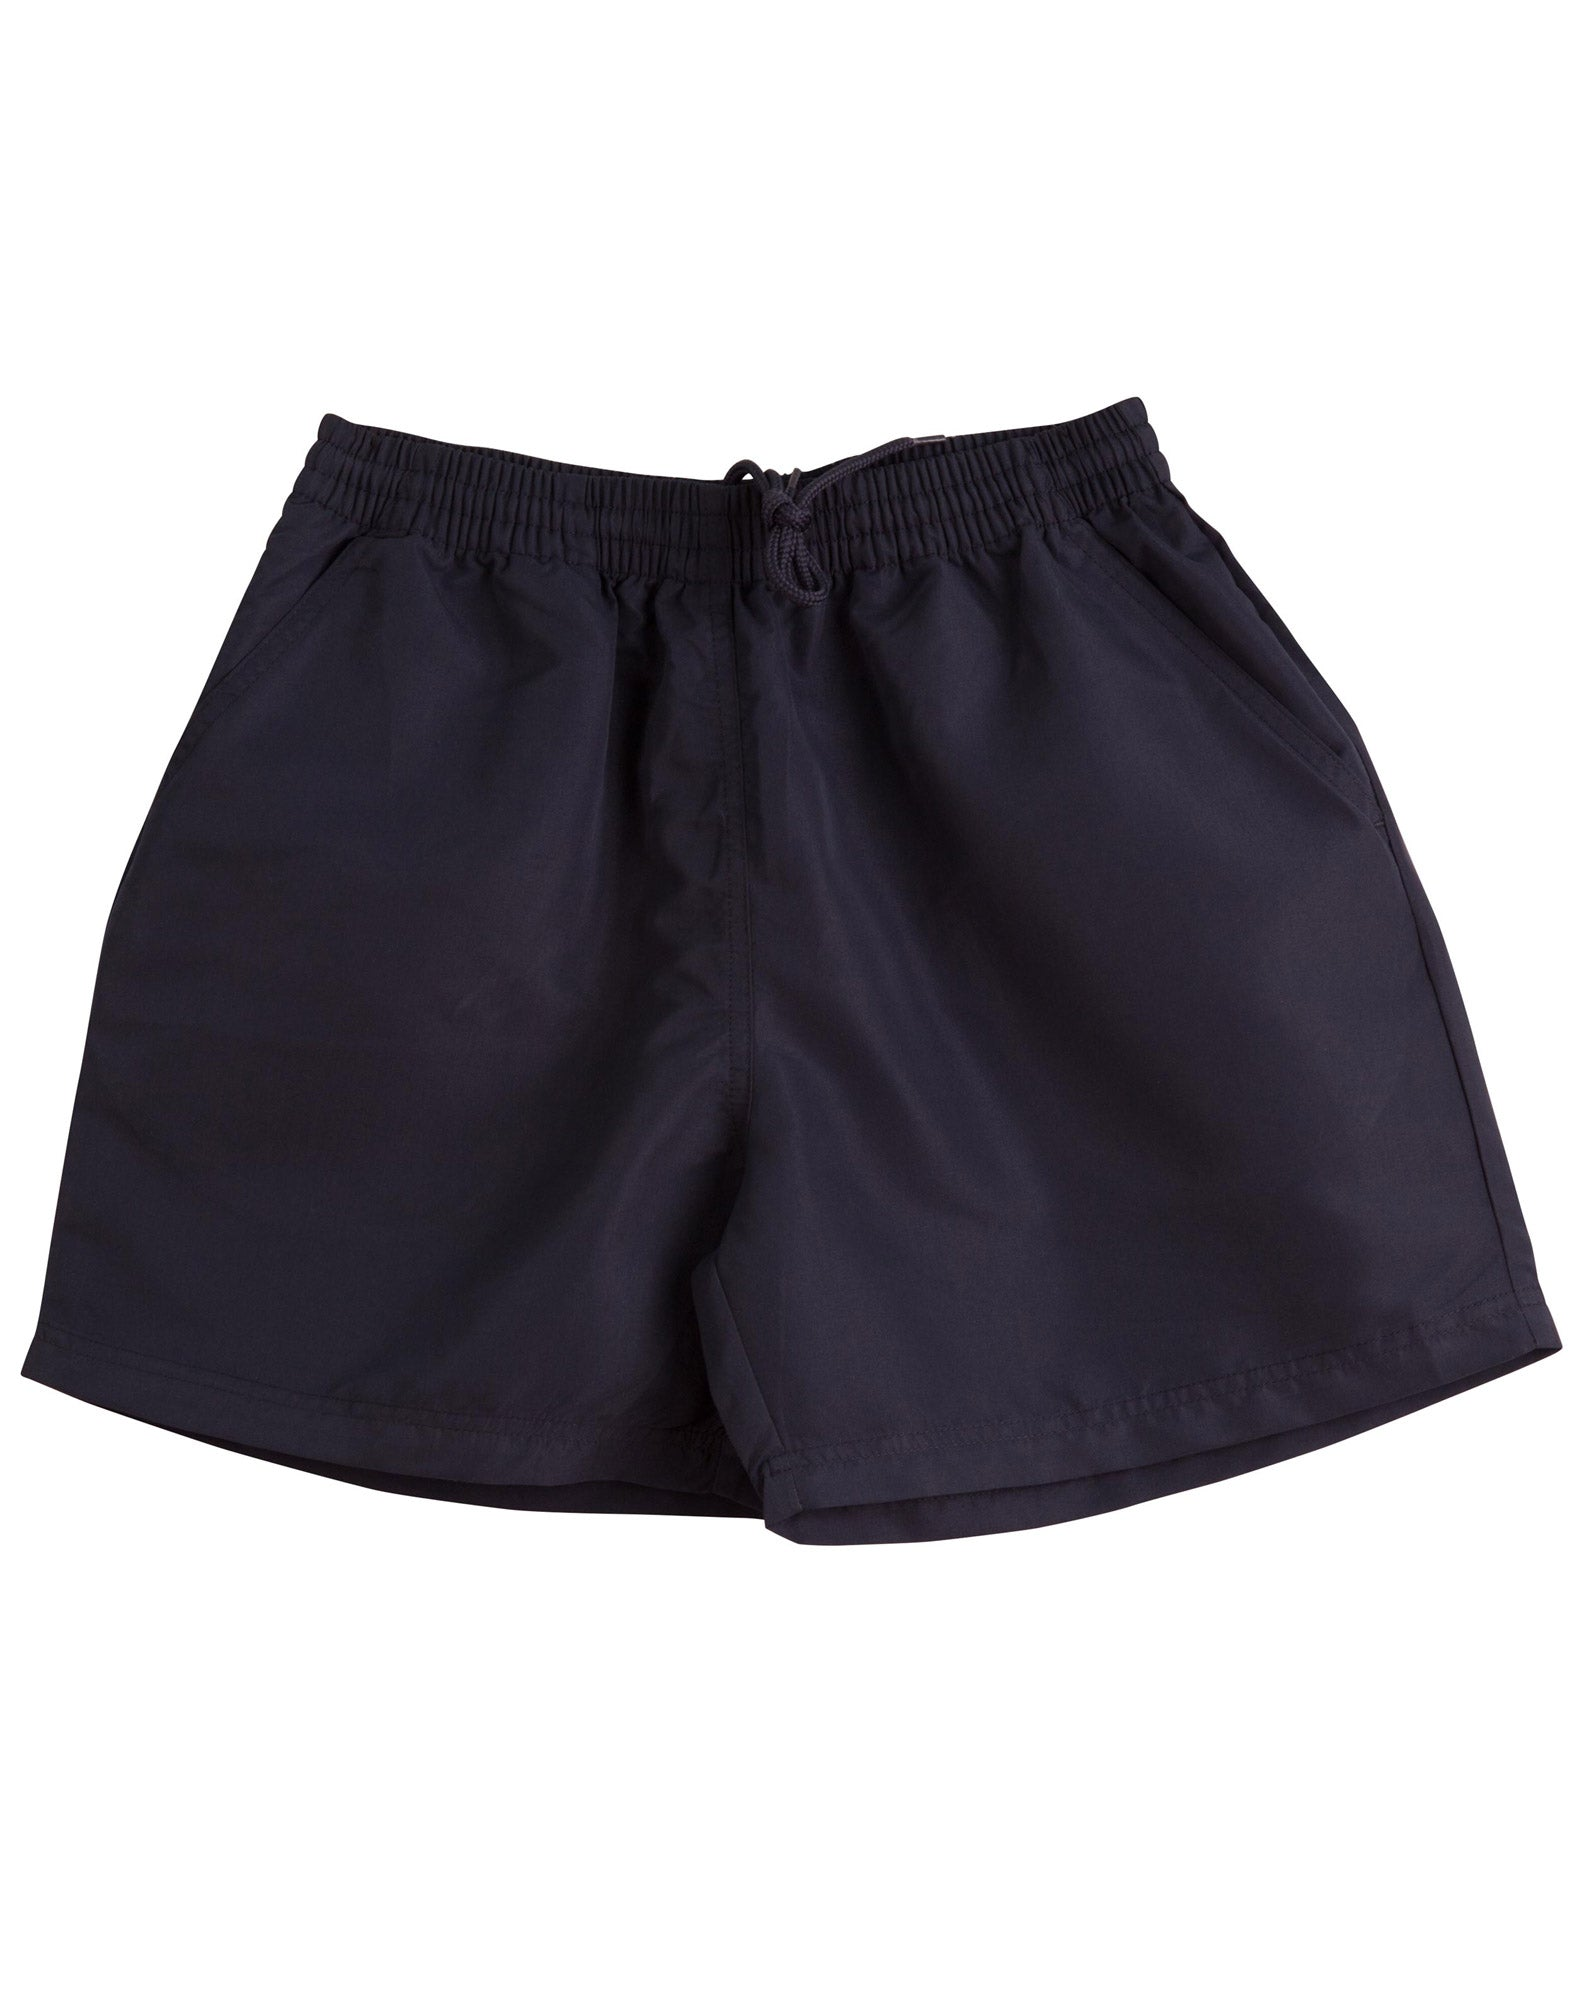 Winning Spirit -SS29K MICROFIBRE SPORT SHORTS Kids